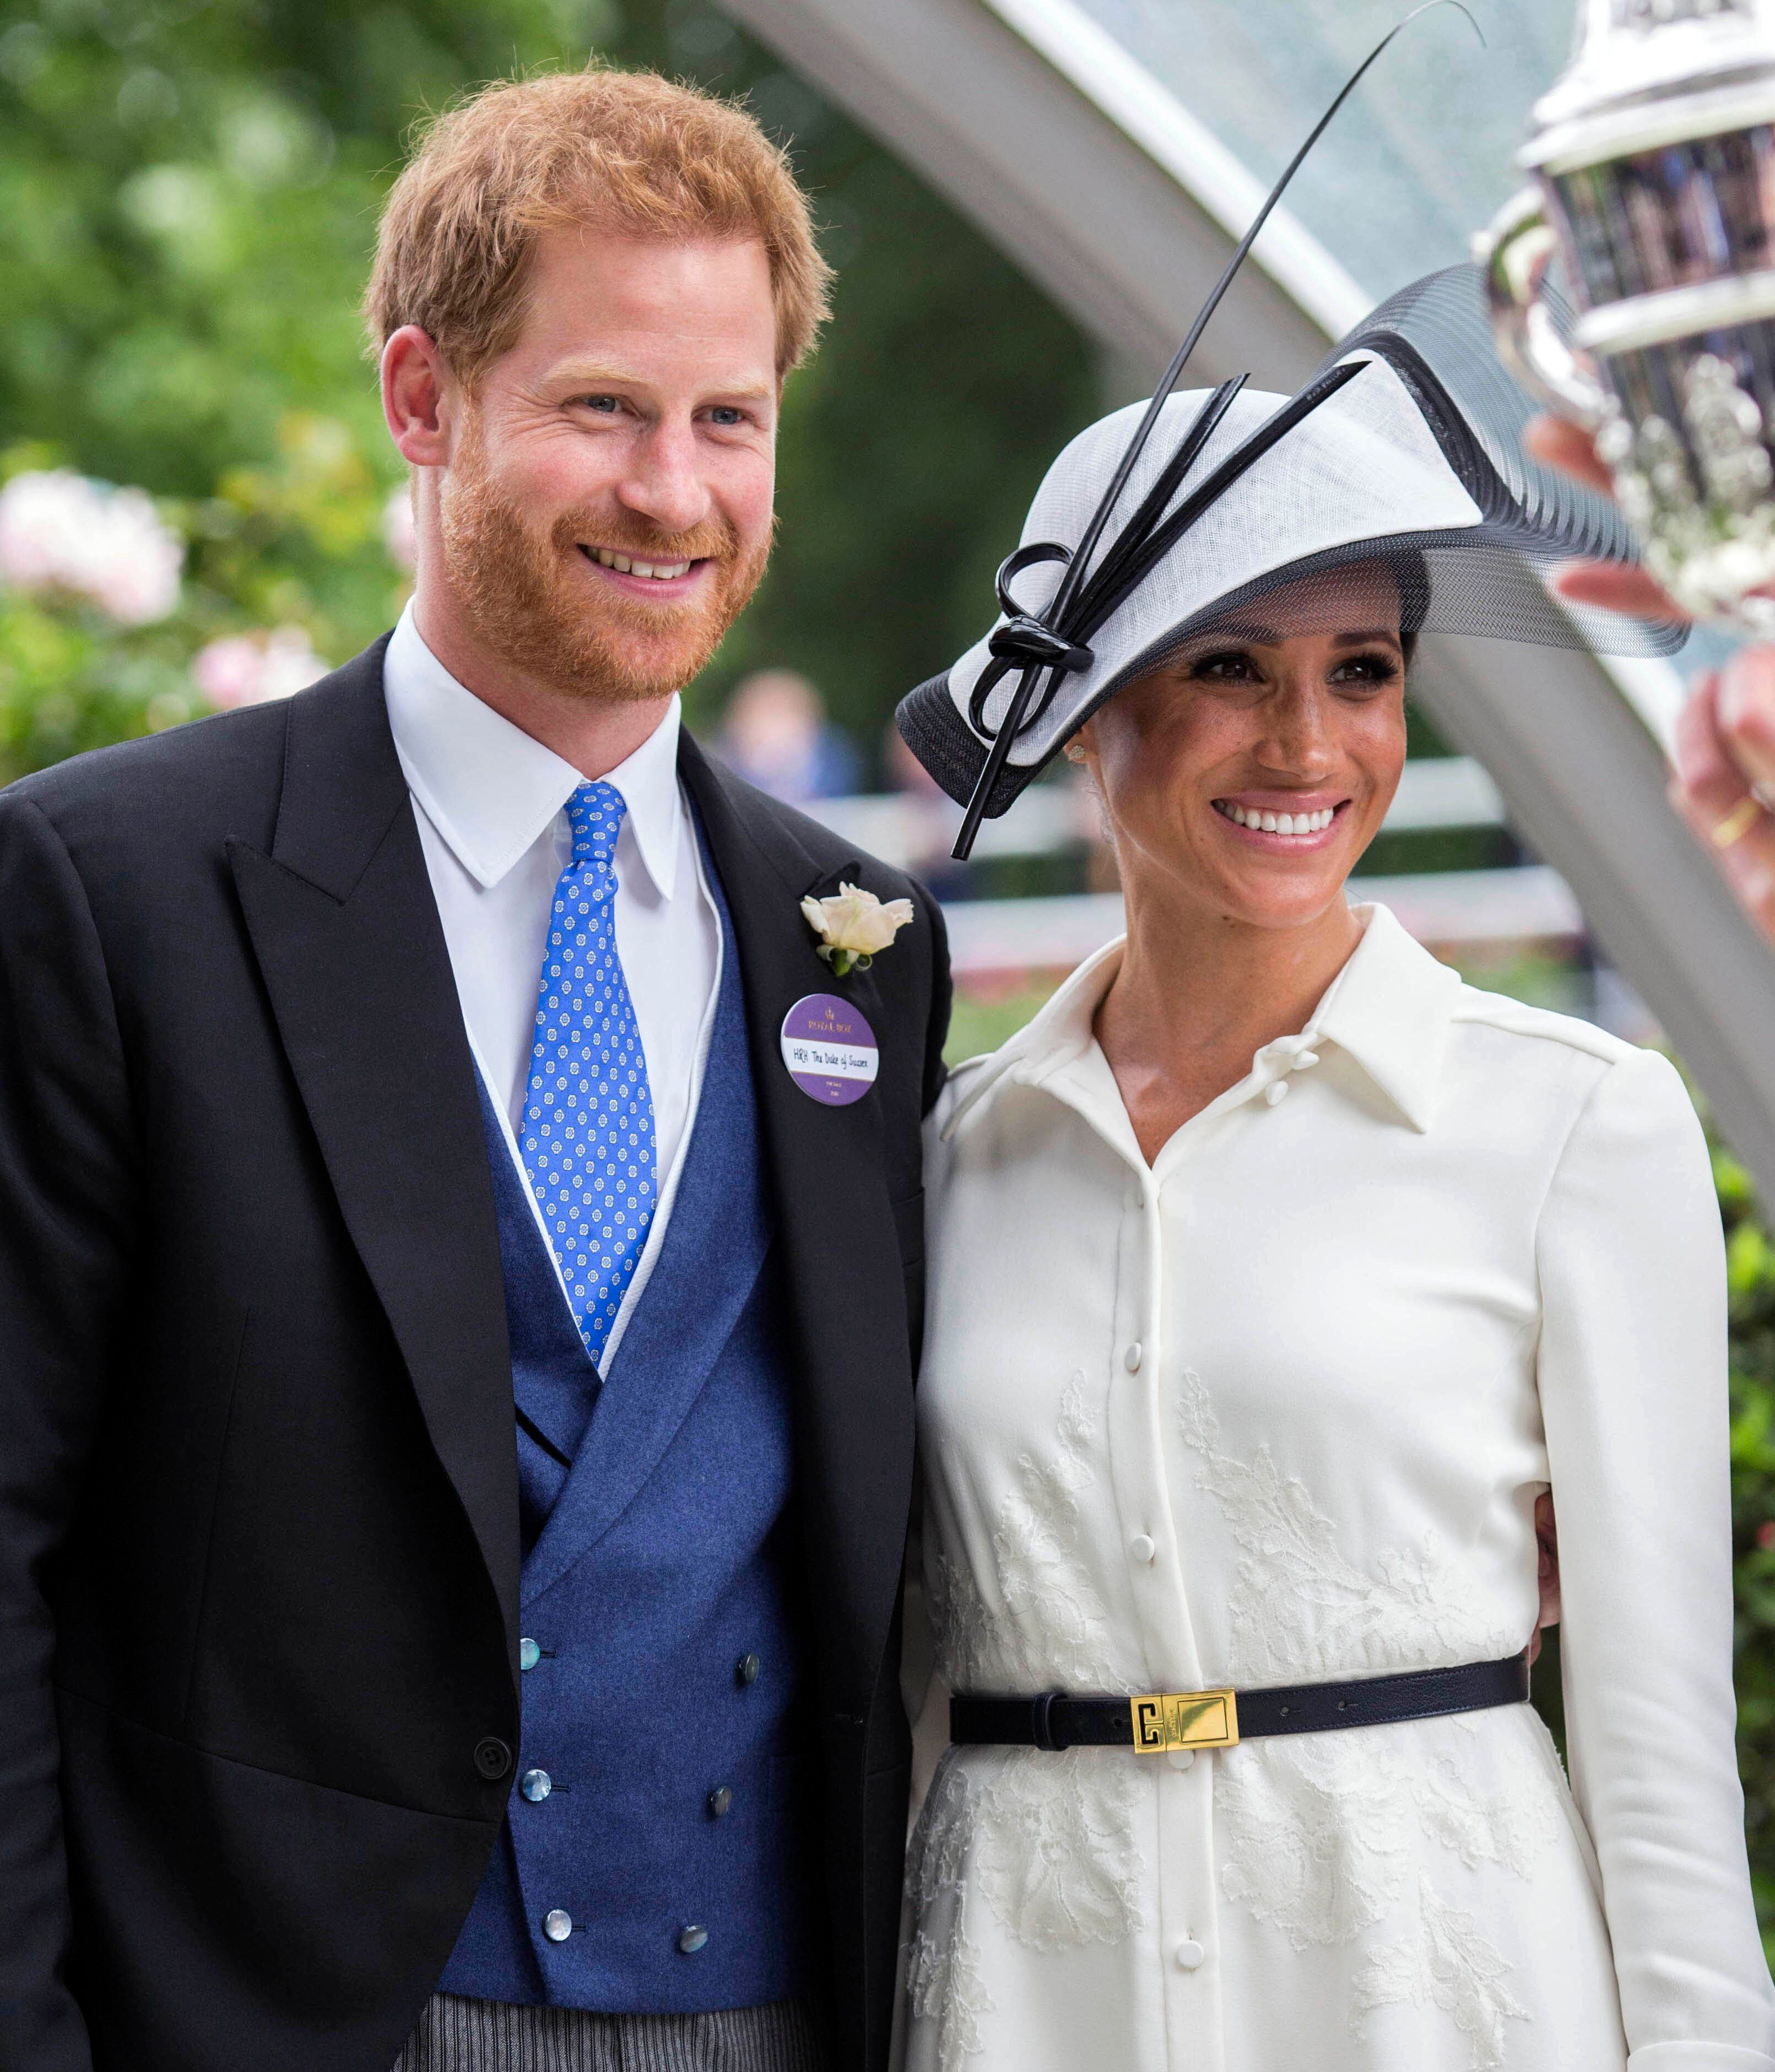 May 19th 2019 - Prince Harry The Duke of Sussex and Duchess Meghan of Sussex celebrate their first wedding anniversary. They were married at St. George's Chapel on the grounds of Windsor Castle on May 19th 2018. - File Photo by: zz/KGC-107/STAR MAX/IPx 2018 6/19/18 Prince Harry The Duke of Sussex and Meghan The Duchess of Sussex at Royal Ascot Day One at Ascot Racecourse. (Berkshire, England, UK)